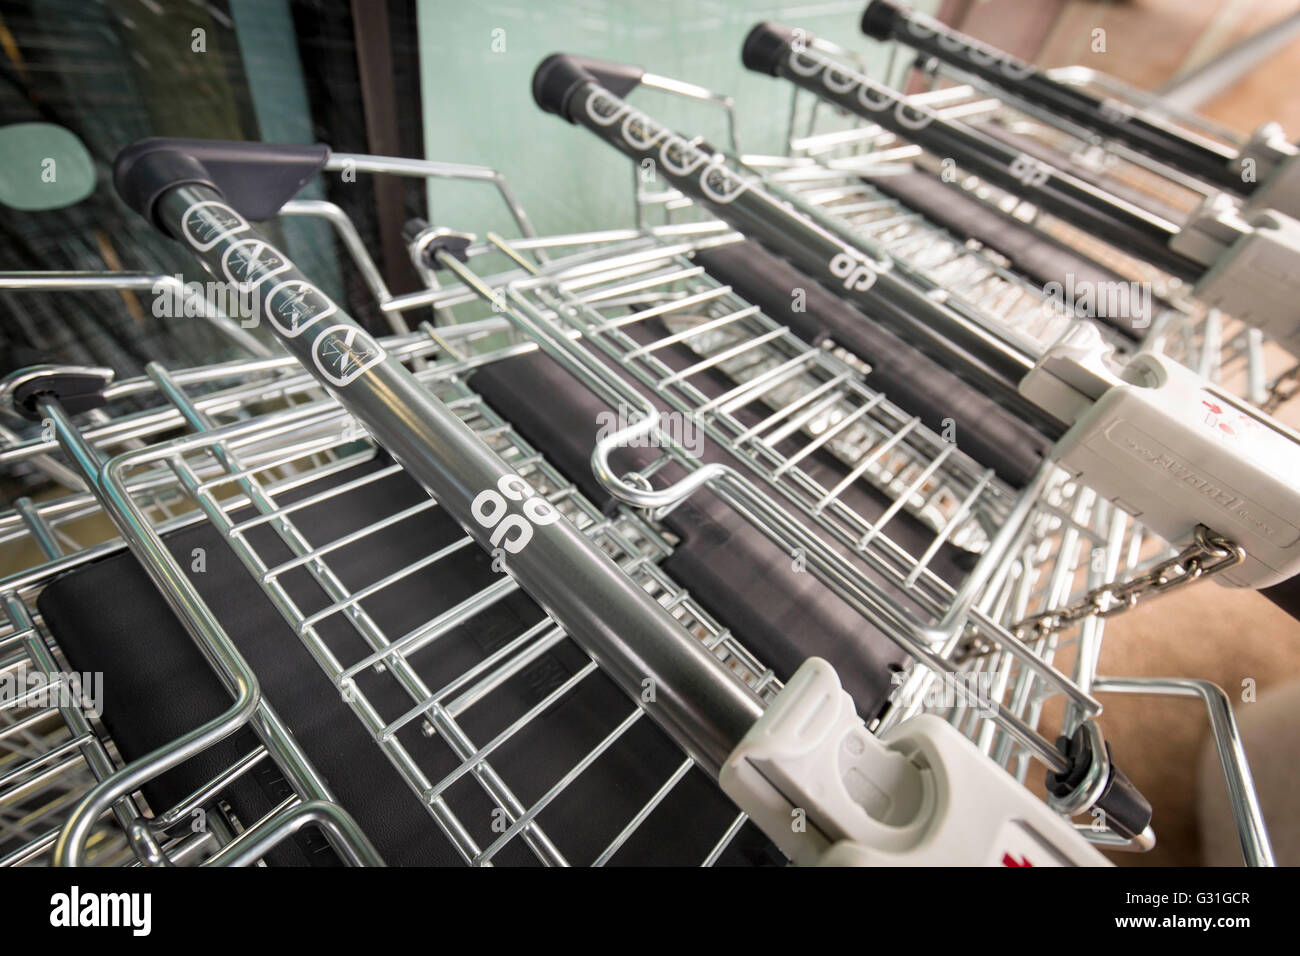 Co-Op trolleys - Stock Image